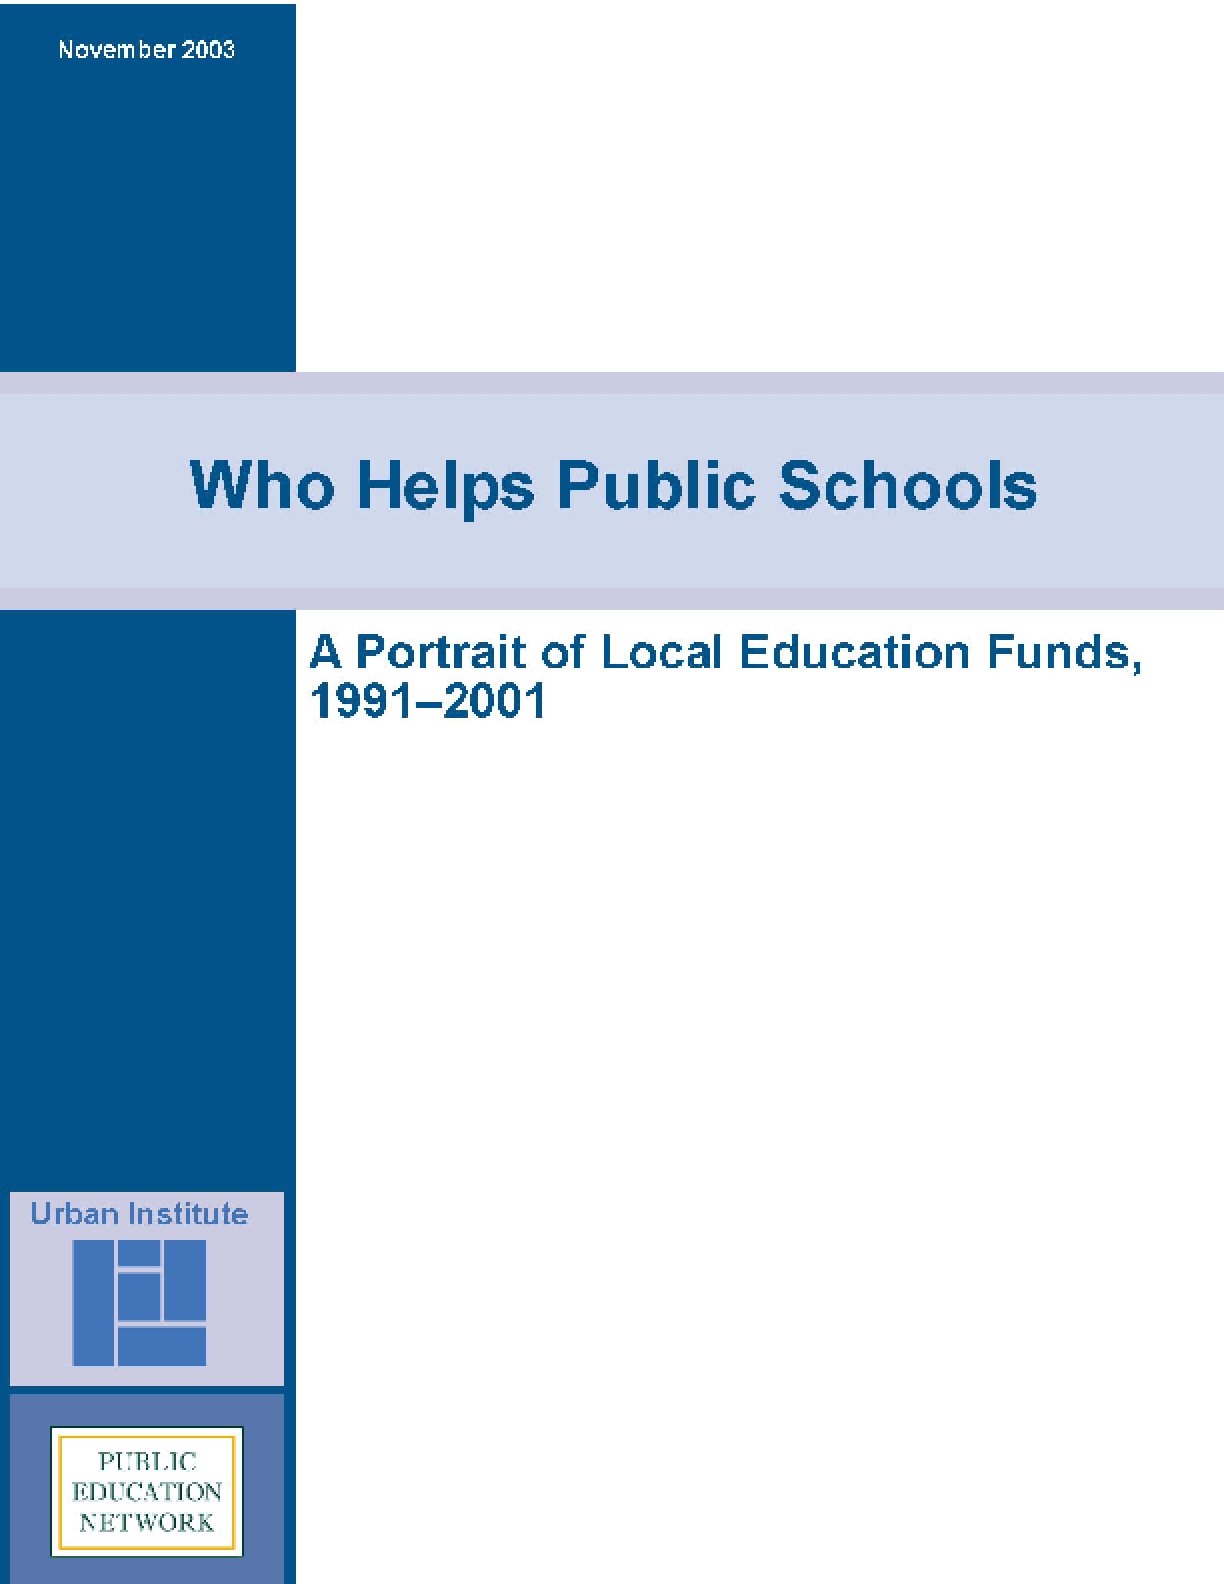 Who Helps Public Schools: A Portrait of Local Education Funds, 1991-2001